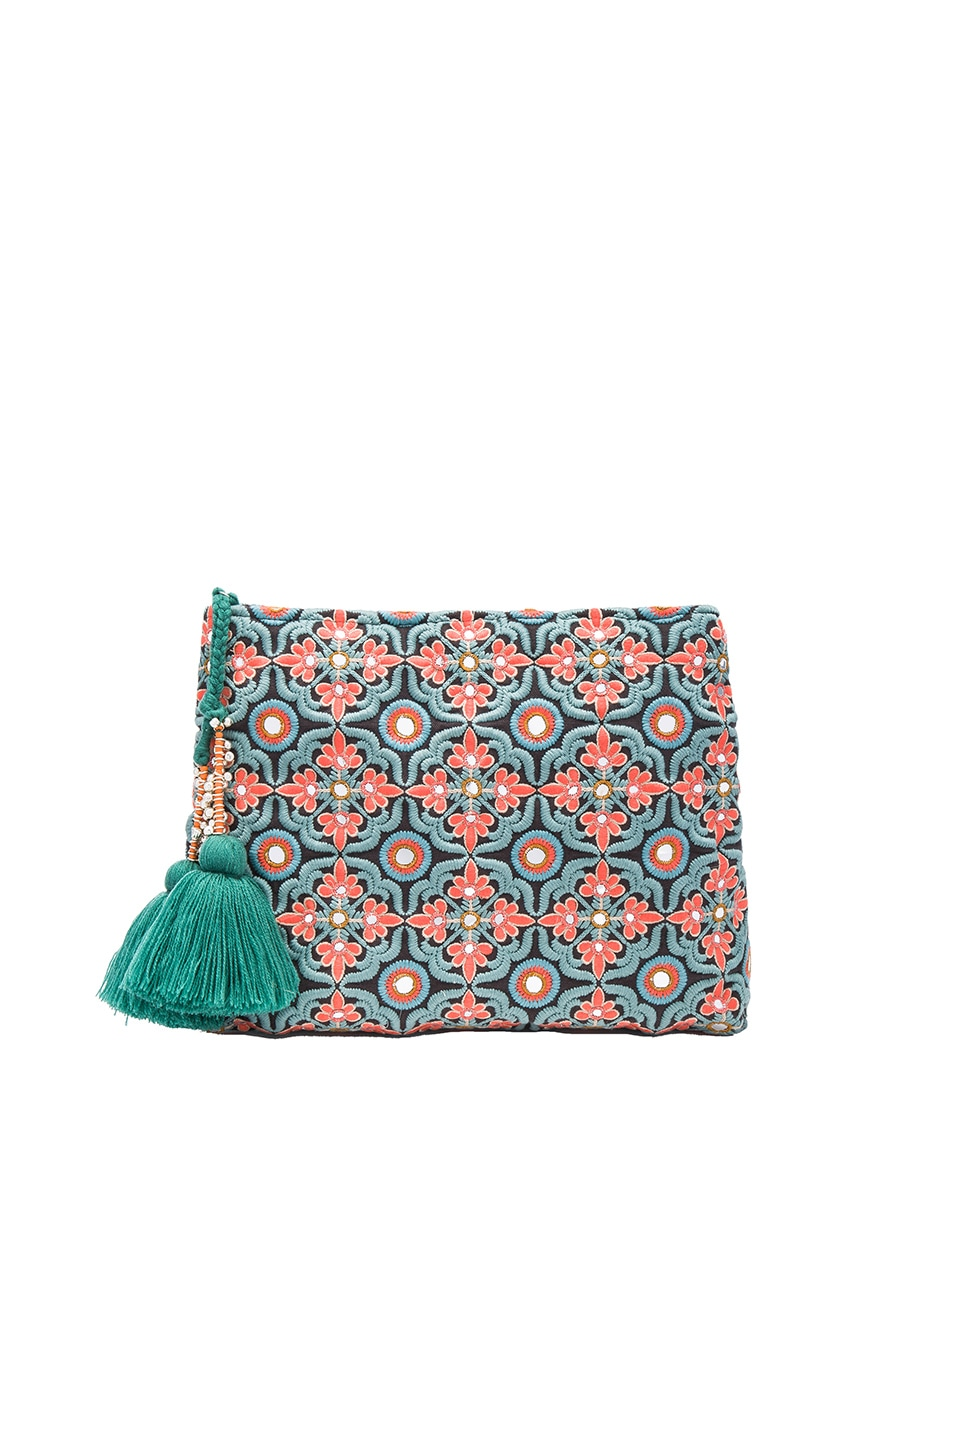 Star Mela Ashi Clutch in Faded Black & Multi